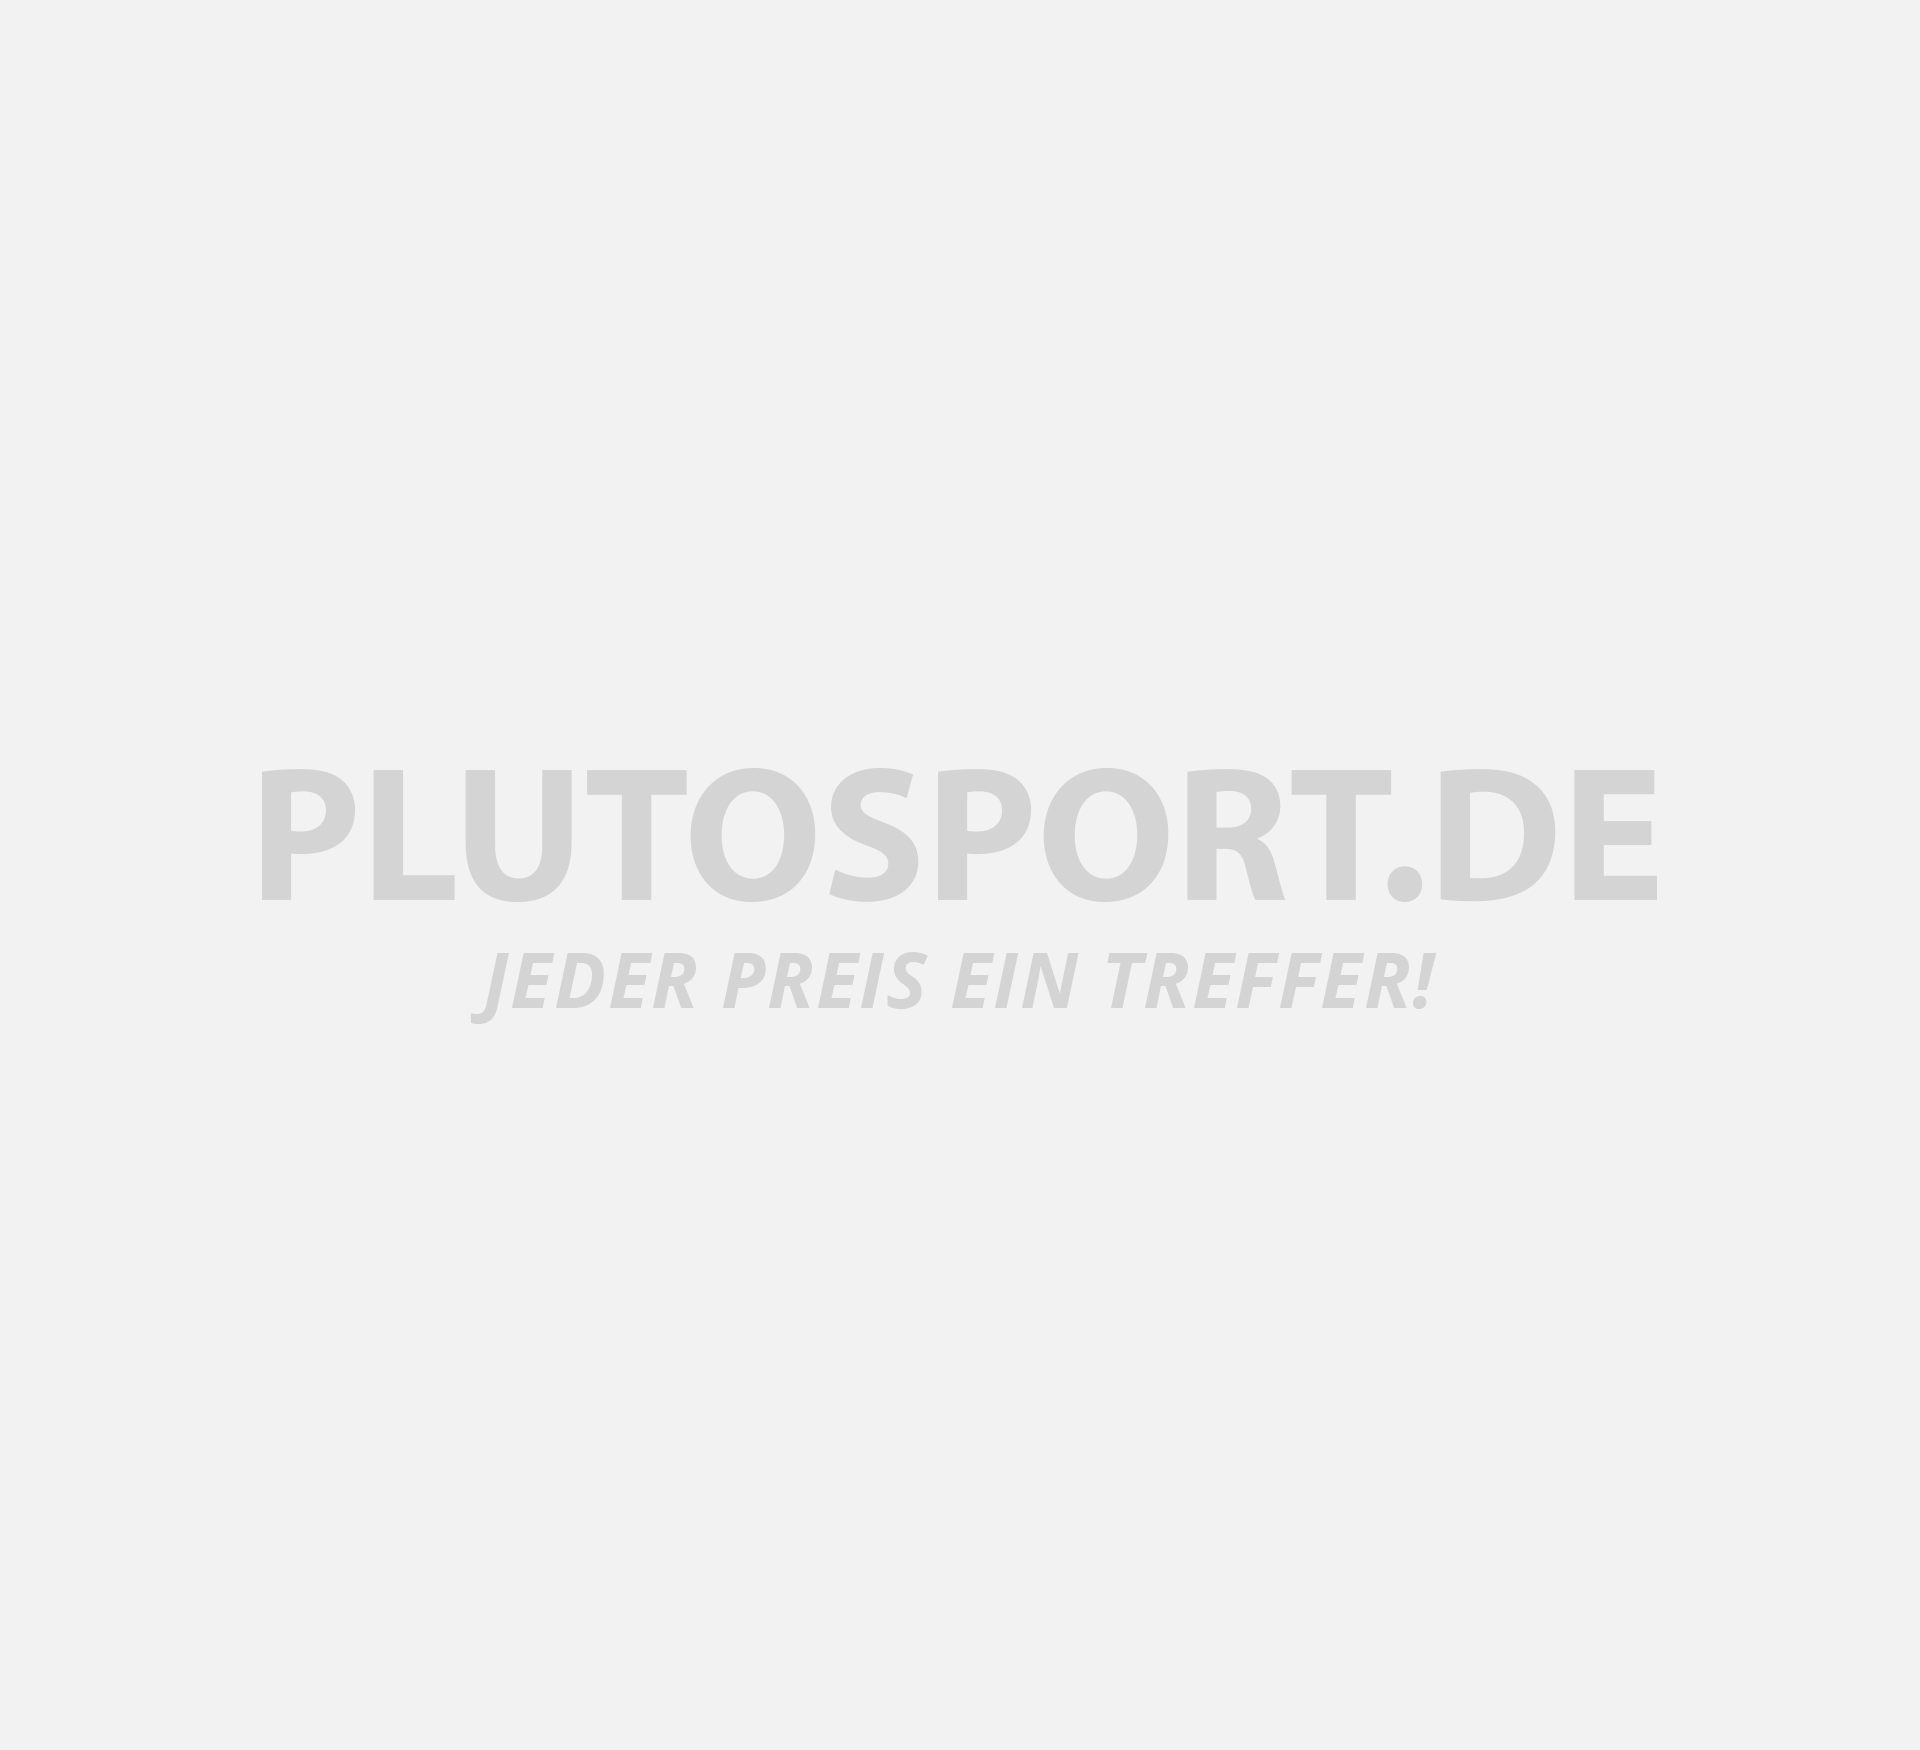 adidas ace 16 2 primemesh fg ag fussballschuhe mit. Black Bedroom Furniture Sets. Home Design Ideas